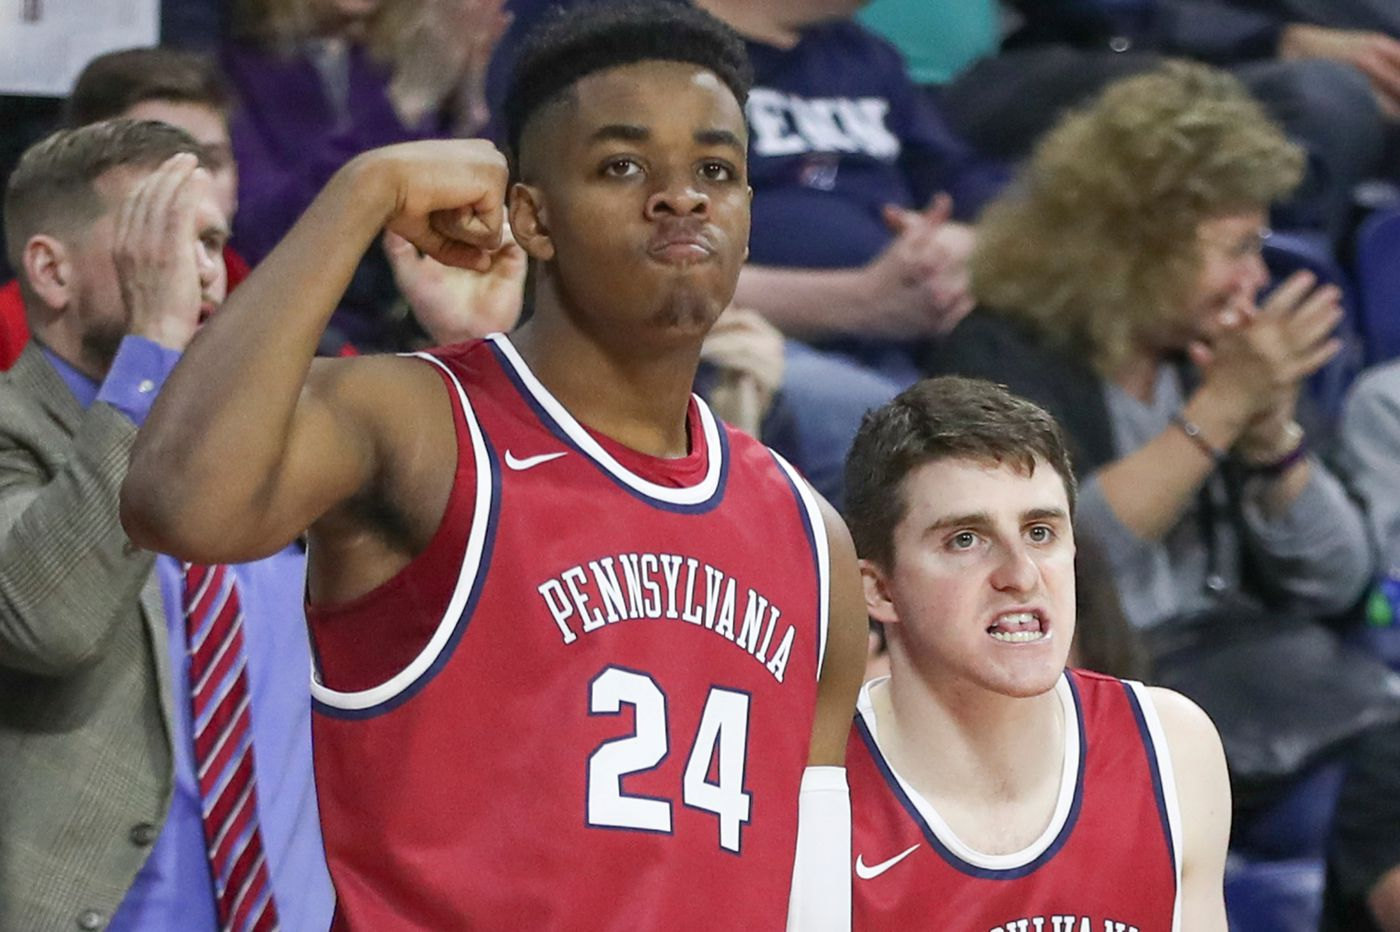 Penn Might Not Be In The Ivy League Tournament Without